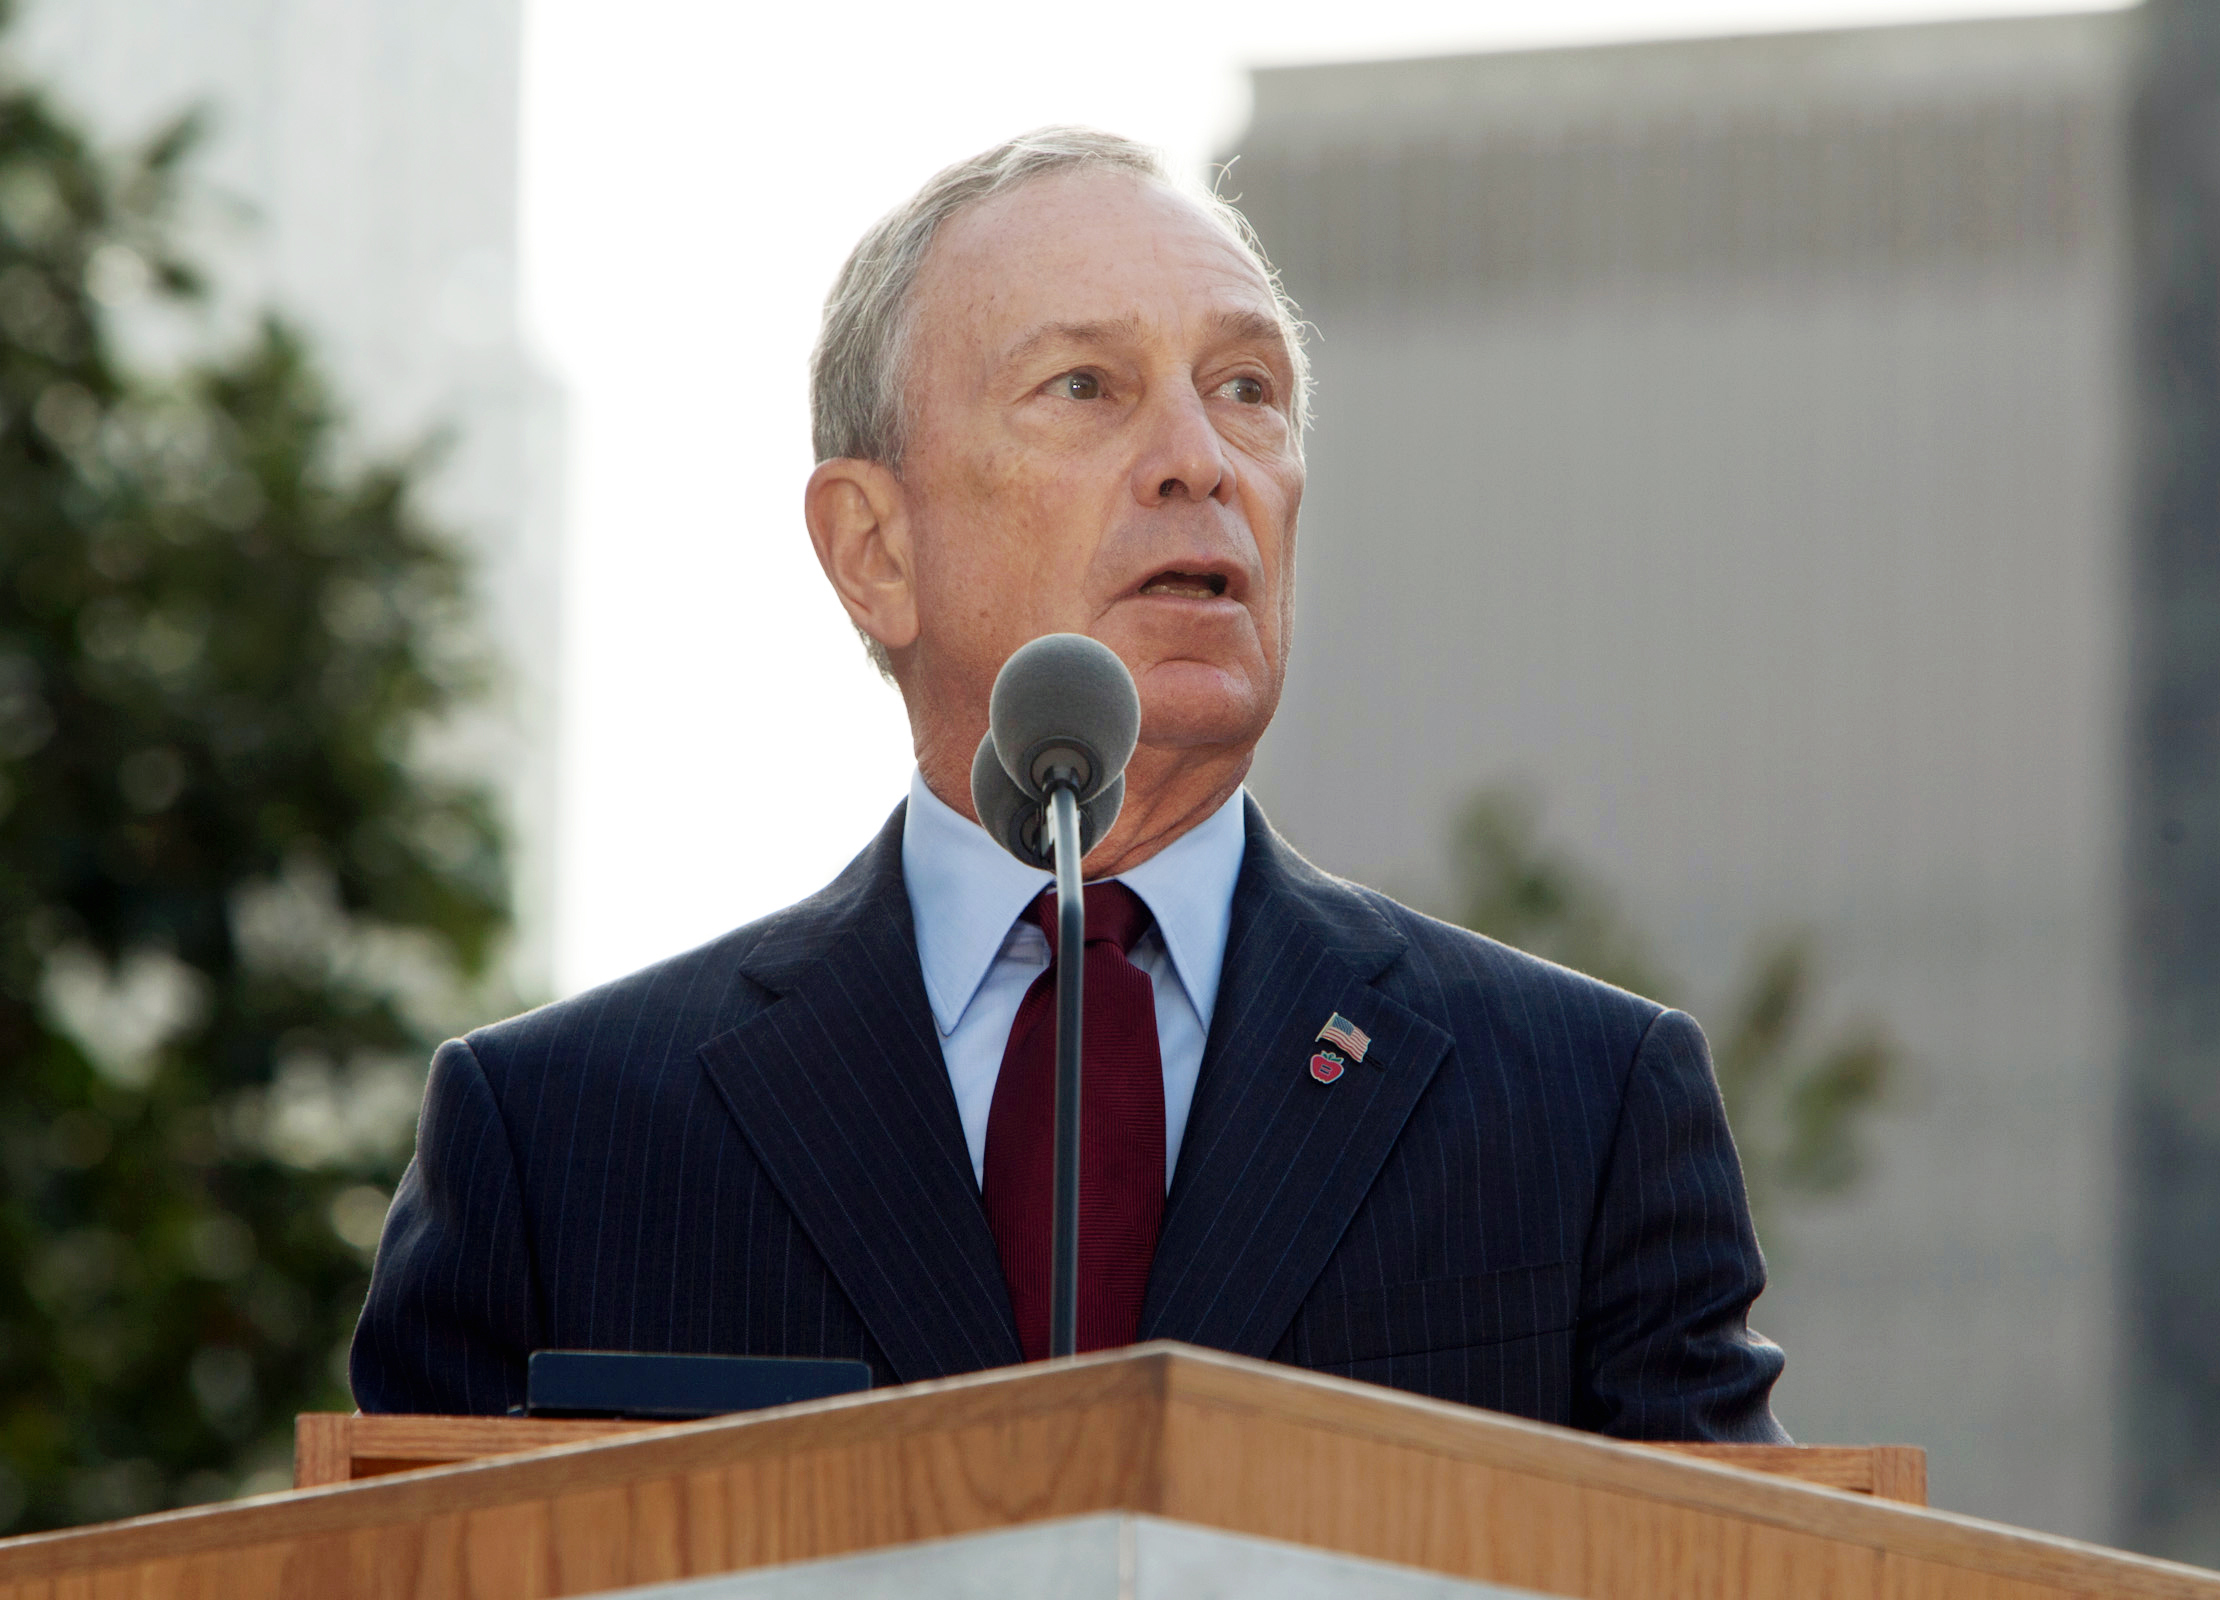 Report: N.Y. Mayor Bloomberg bans 2-liter sodas with pizza delivery